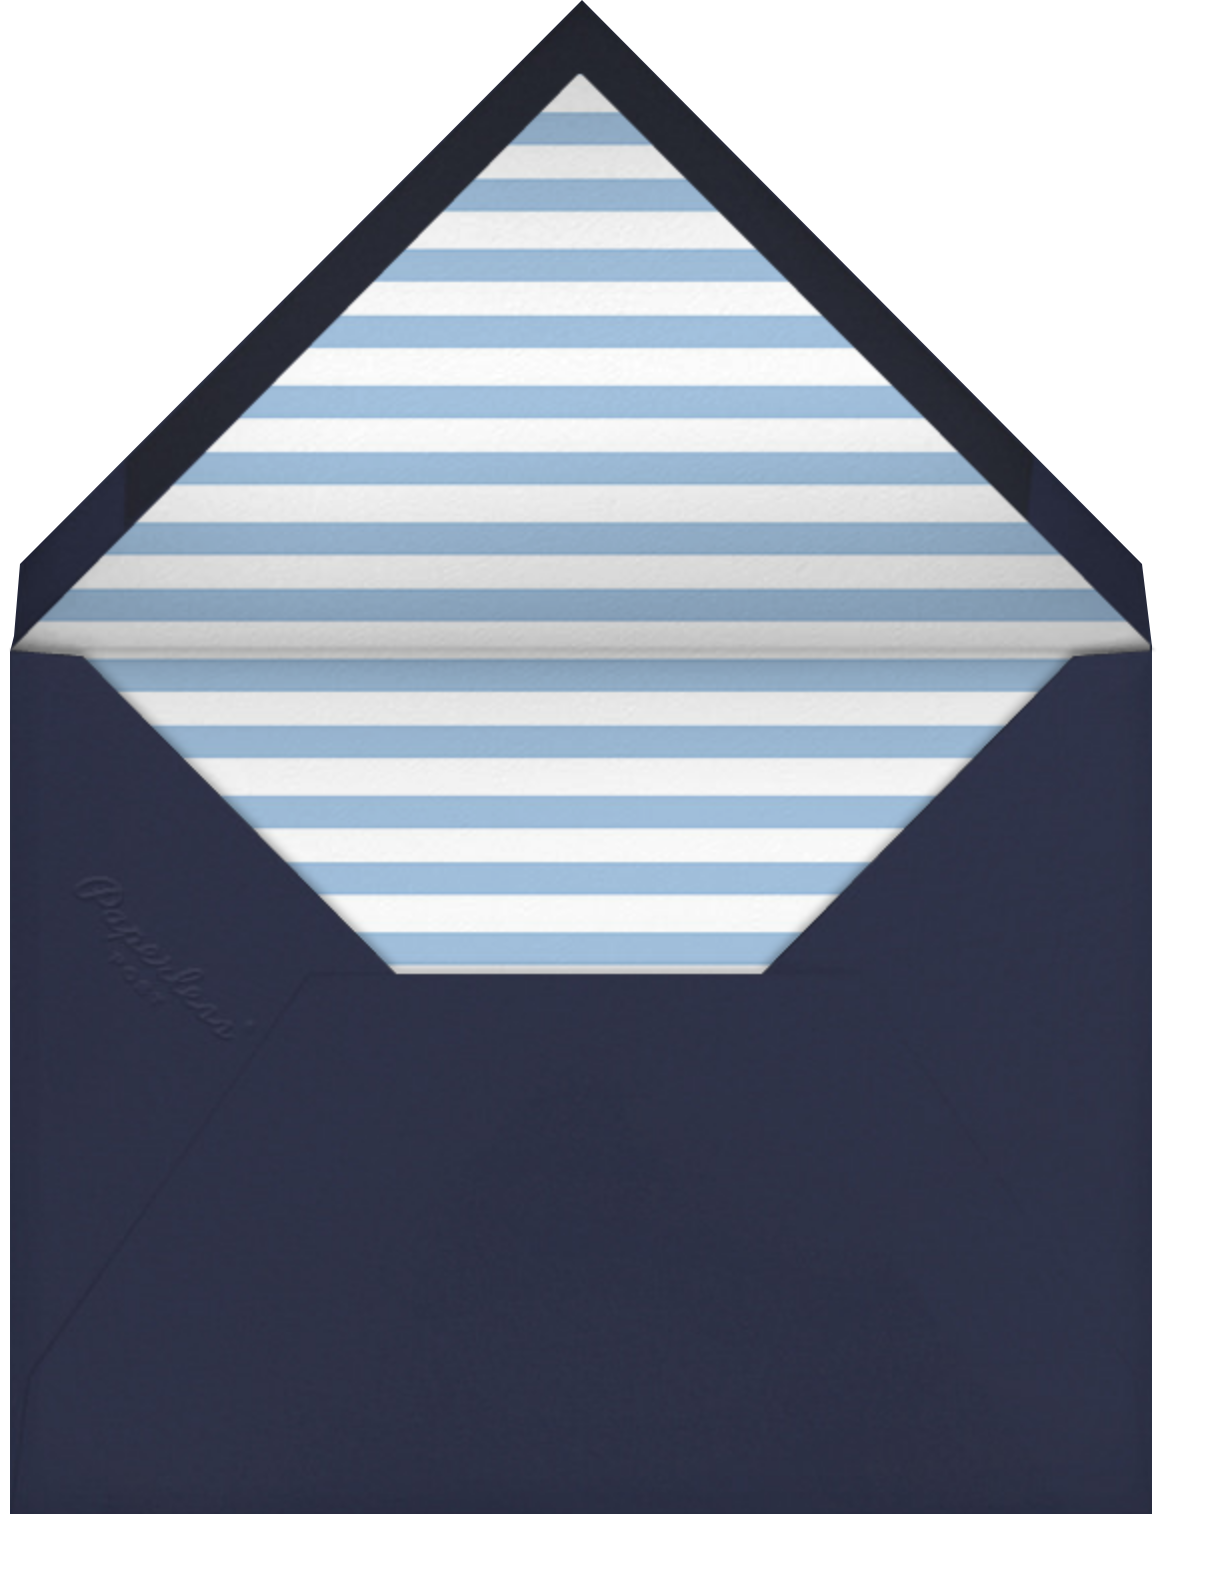 Gradient Messy Strokes - Blue - Paperless Post - Cocktail party - envelope back